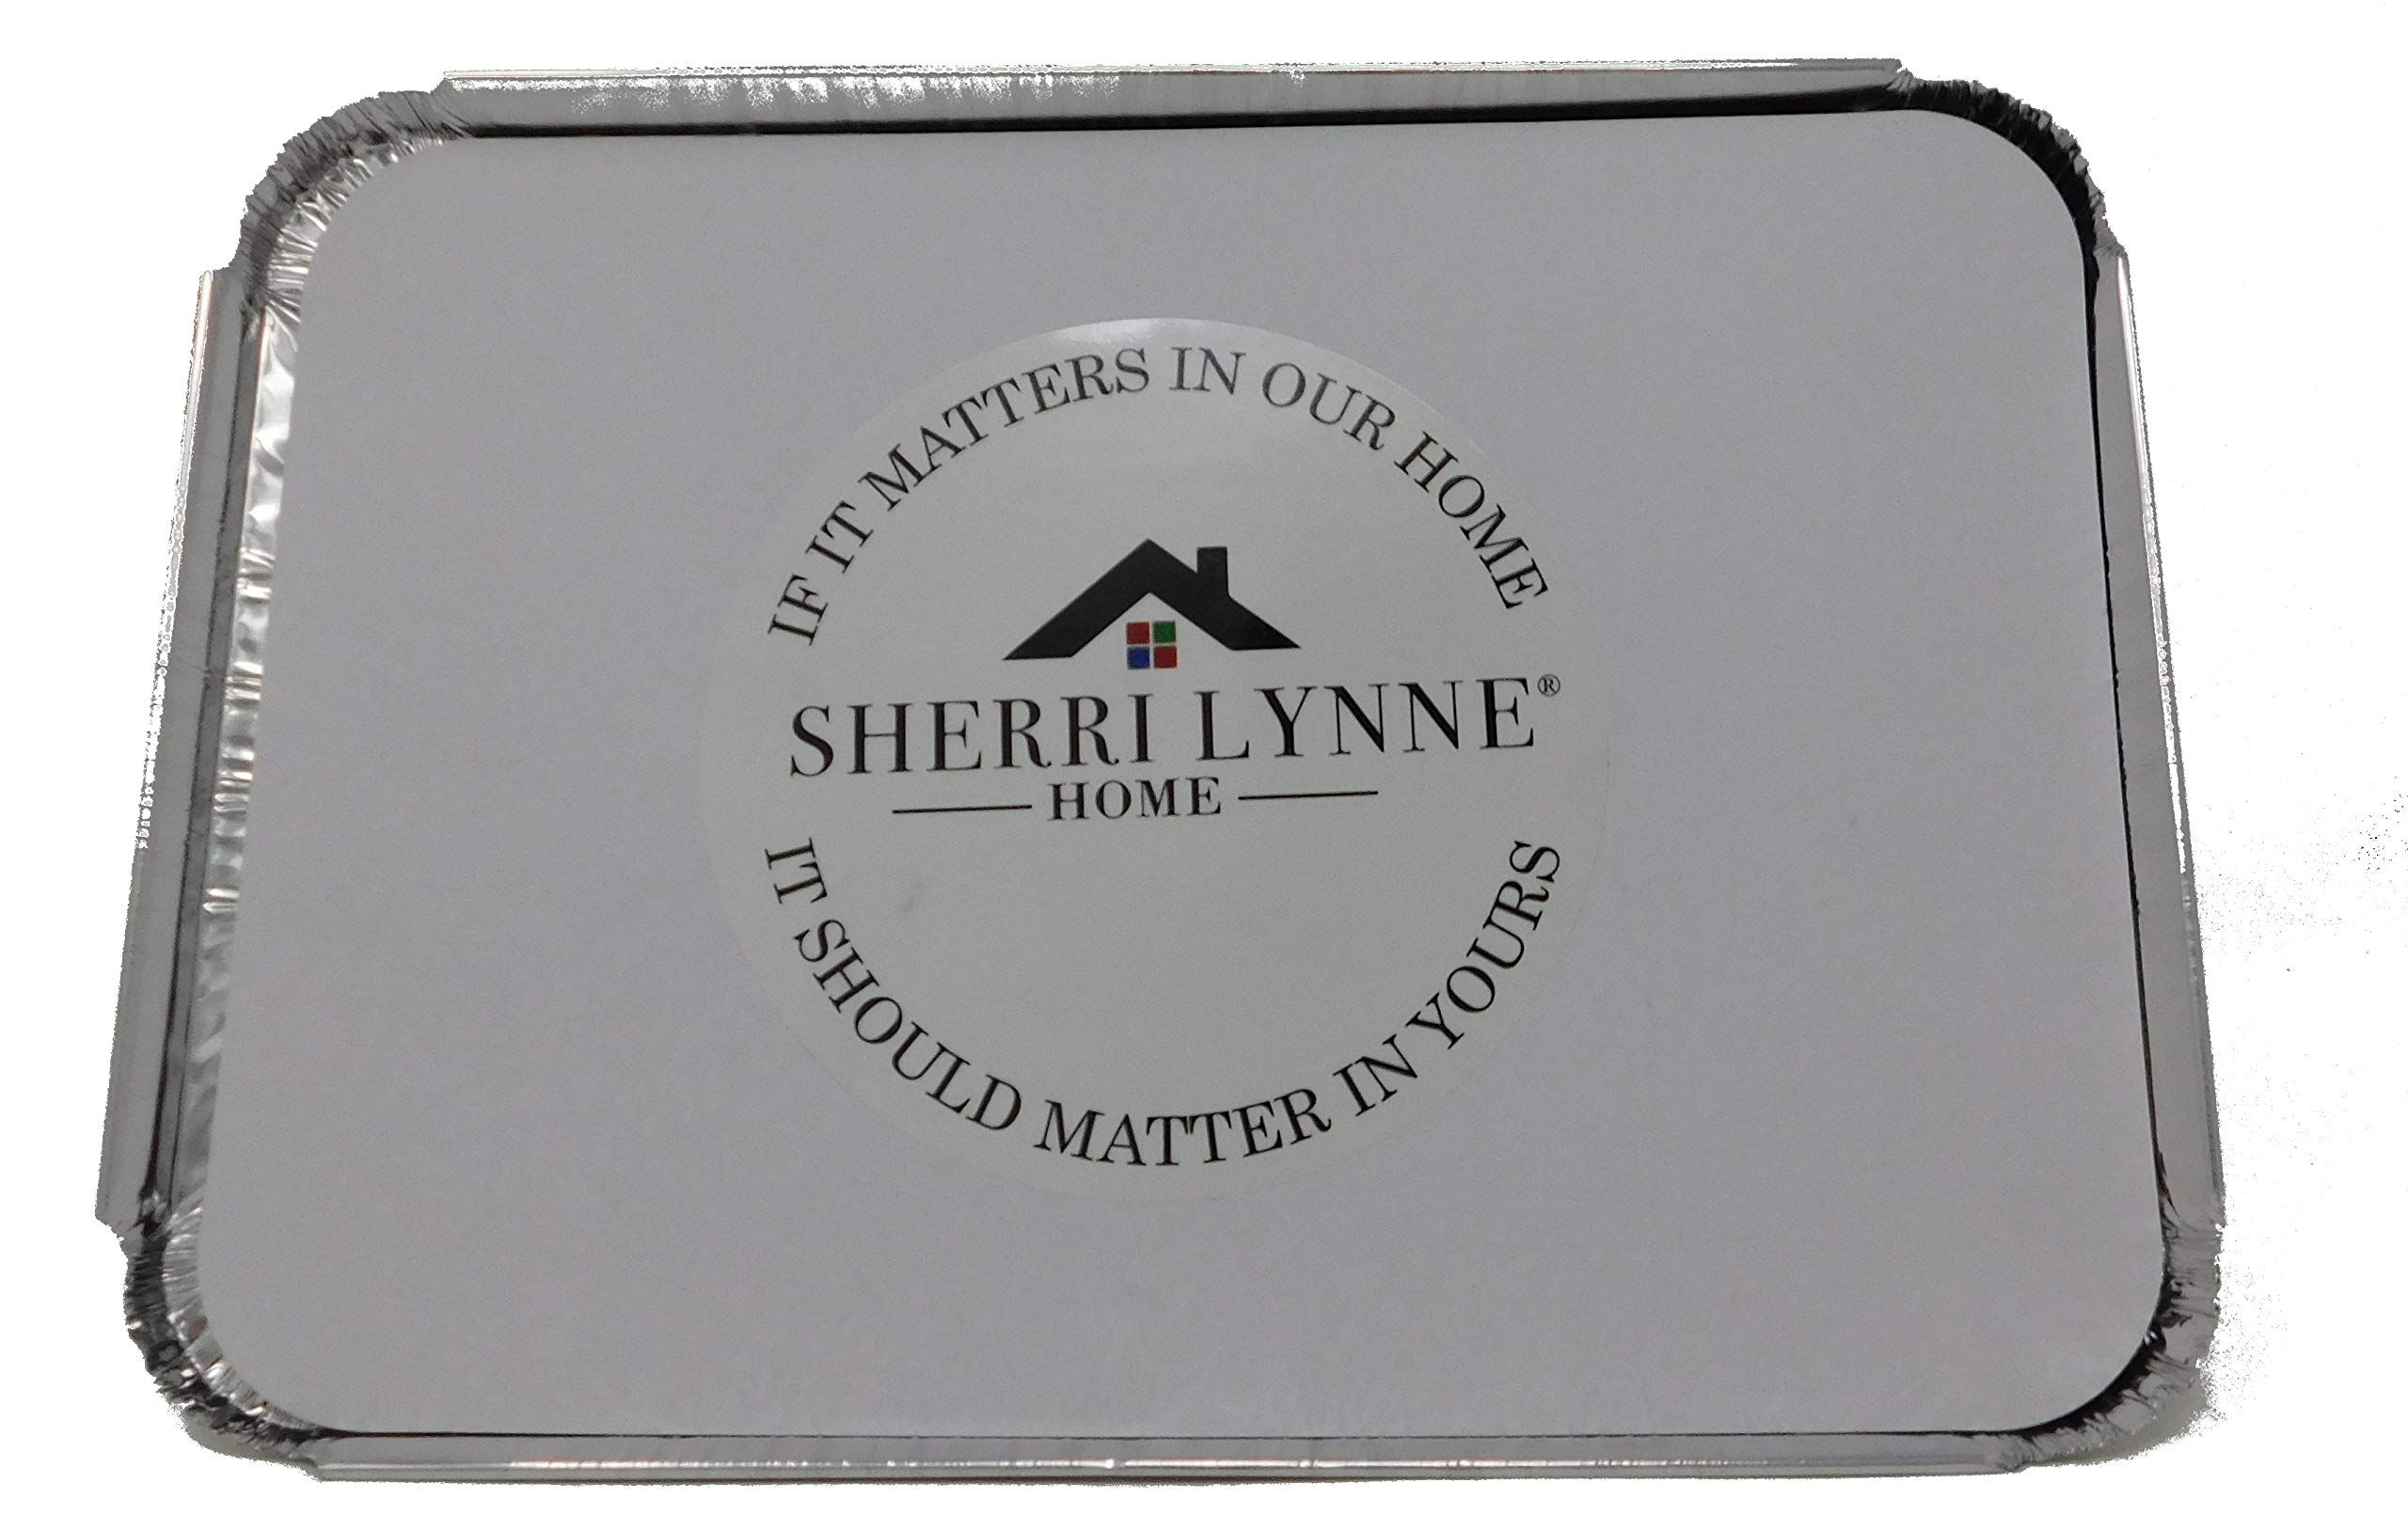 Sherri Lynne Home Aluminum Oblong Foil Pan Containers and Board Lids Set, 2.25 lb Capacity, 9inch x 6inch, 50 Pack WITH LIDS